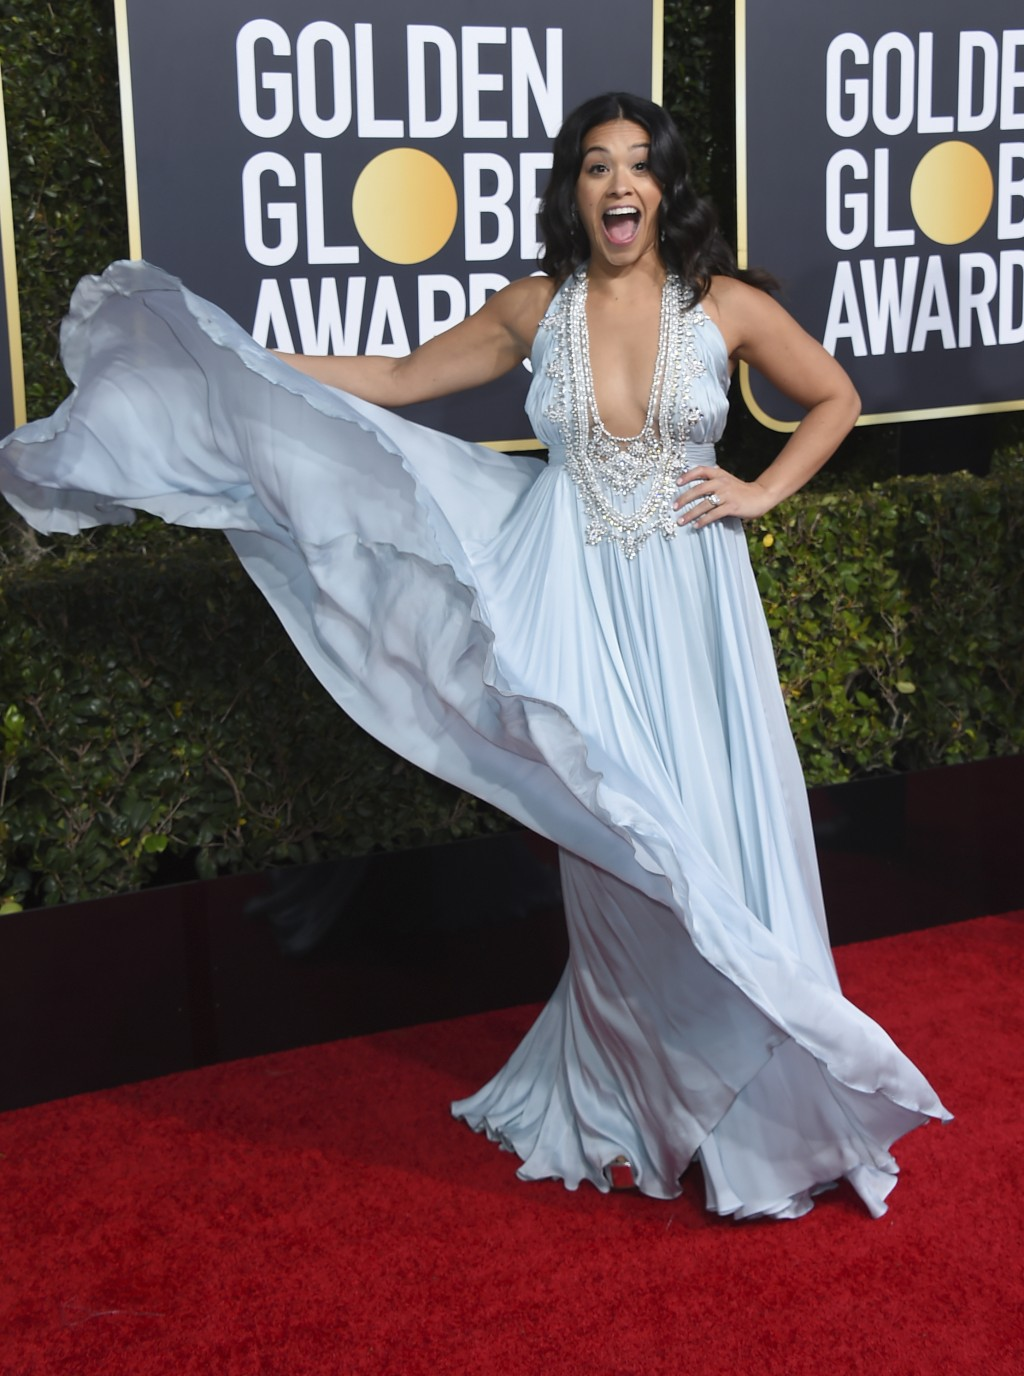 Gina Rodriguez arrives at the 76th annual Golden Globe Awards at the Beverly Hilton Hotel on Sunday, Jan. 6, 2019, in Beverly Hills, Calif. (Photo by